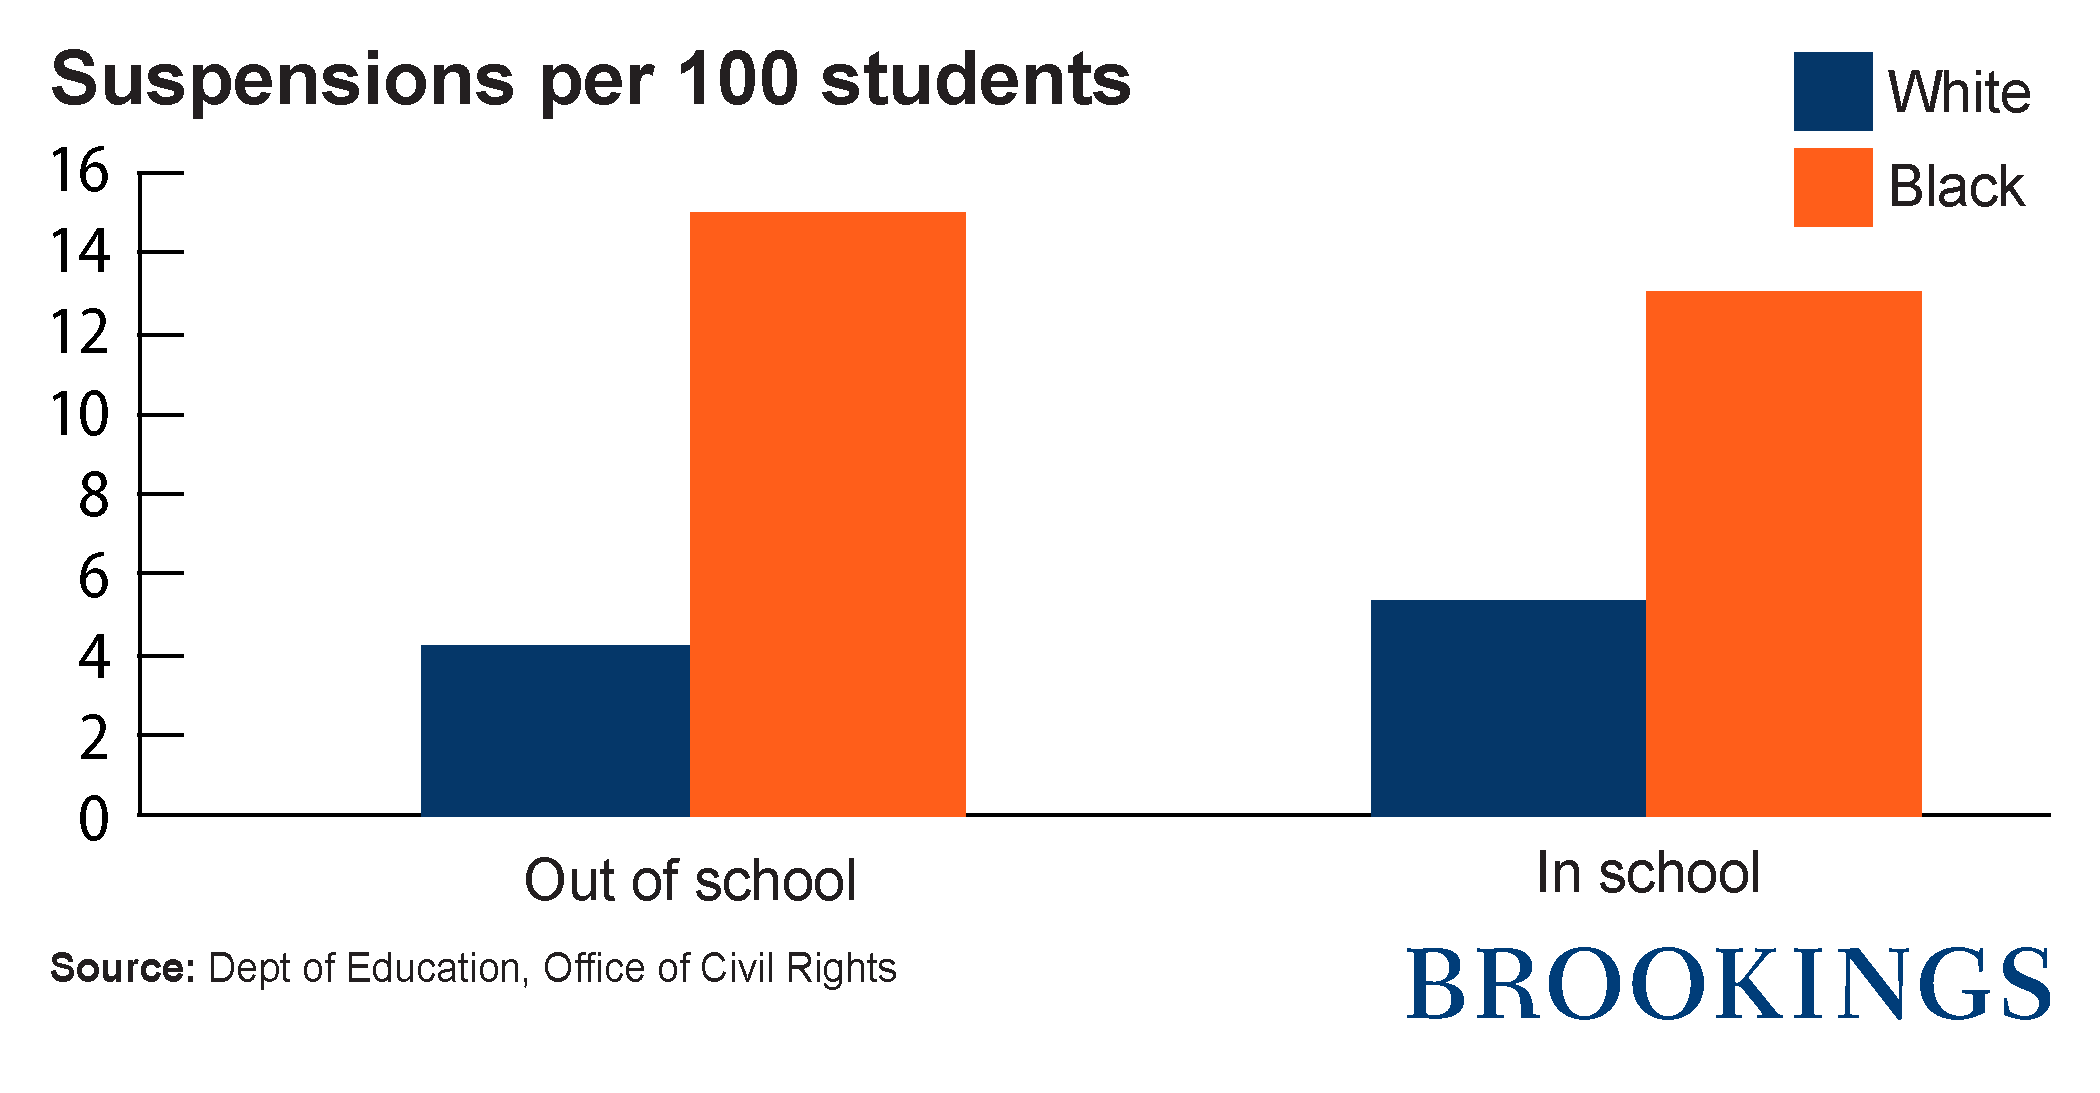 schools black children and corporal punishment brookings figure 2